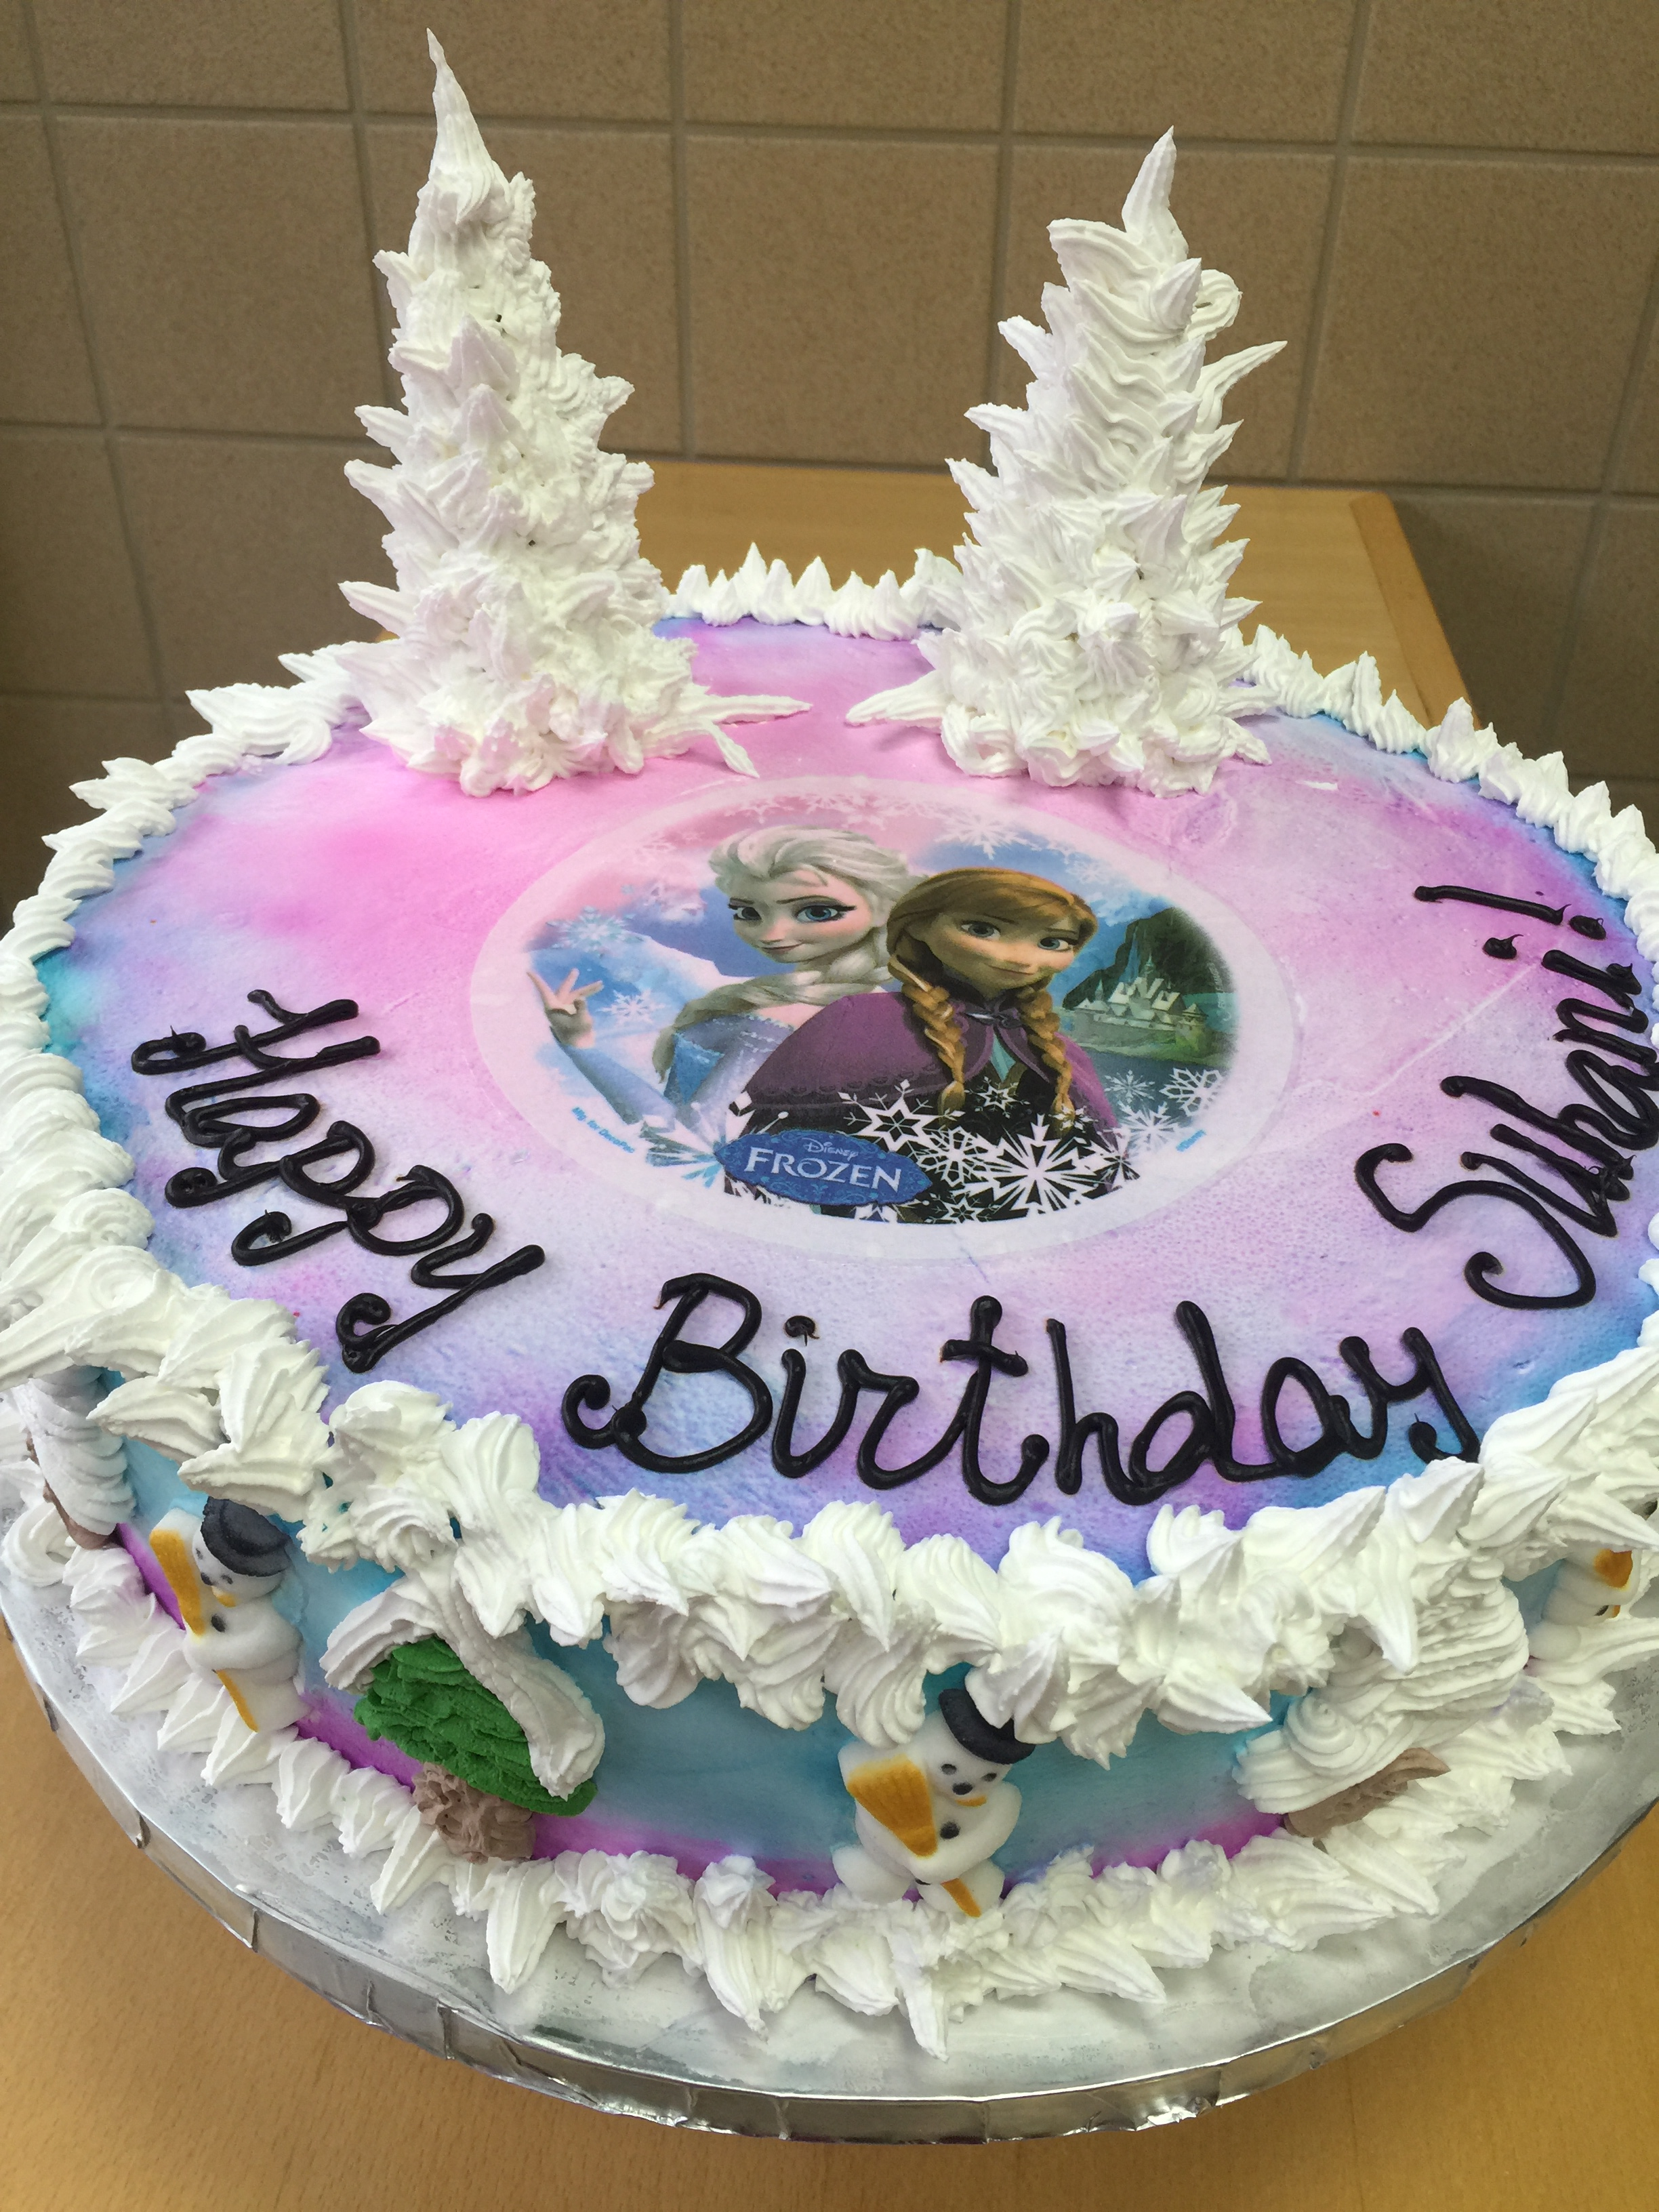 Disneys Frozen Themed Cake Wild Berries Bakery And Cafe